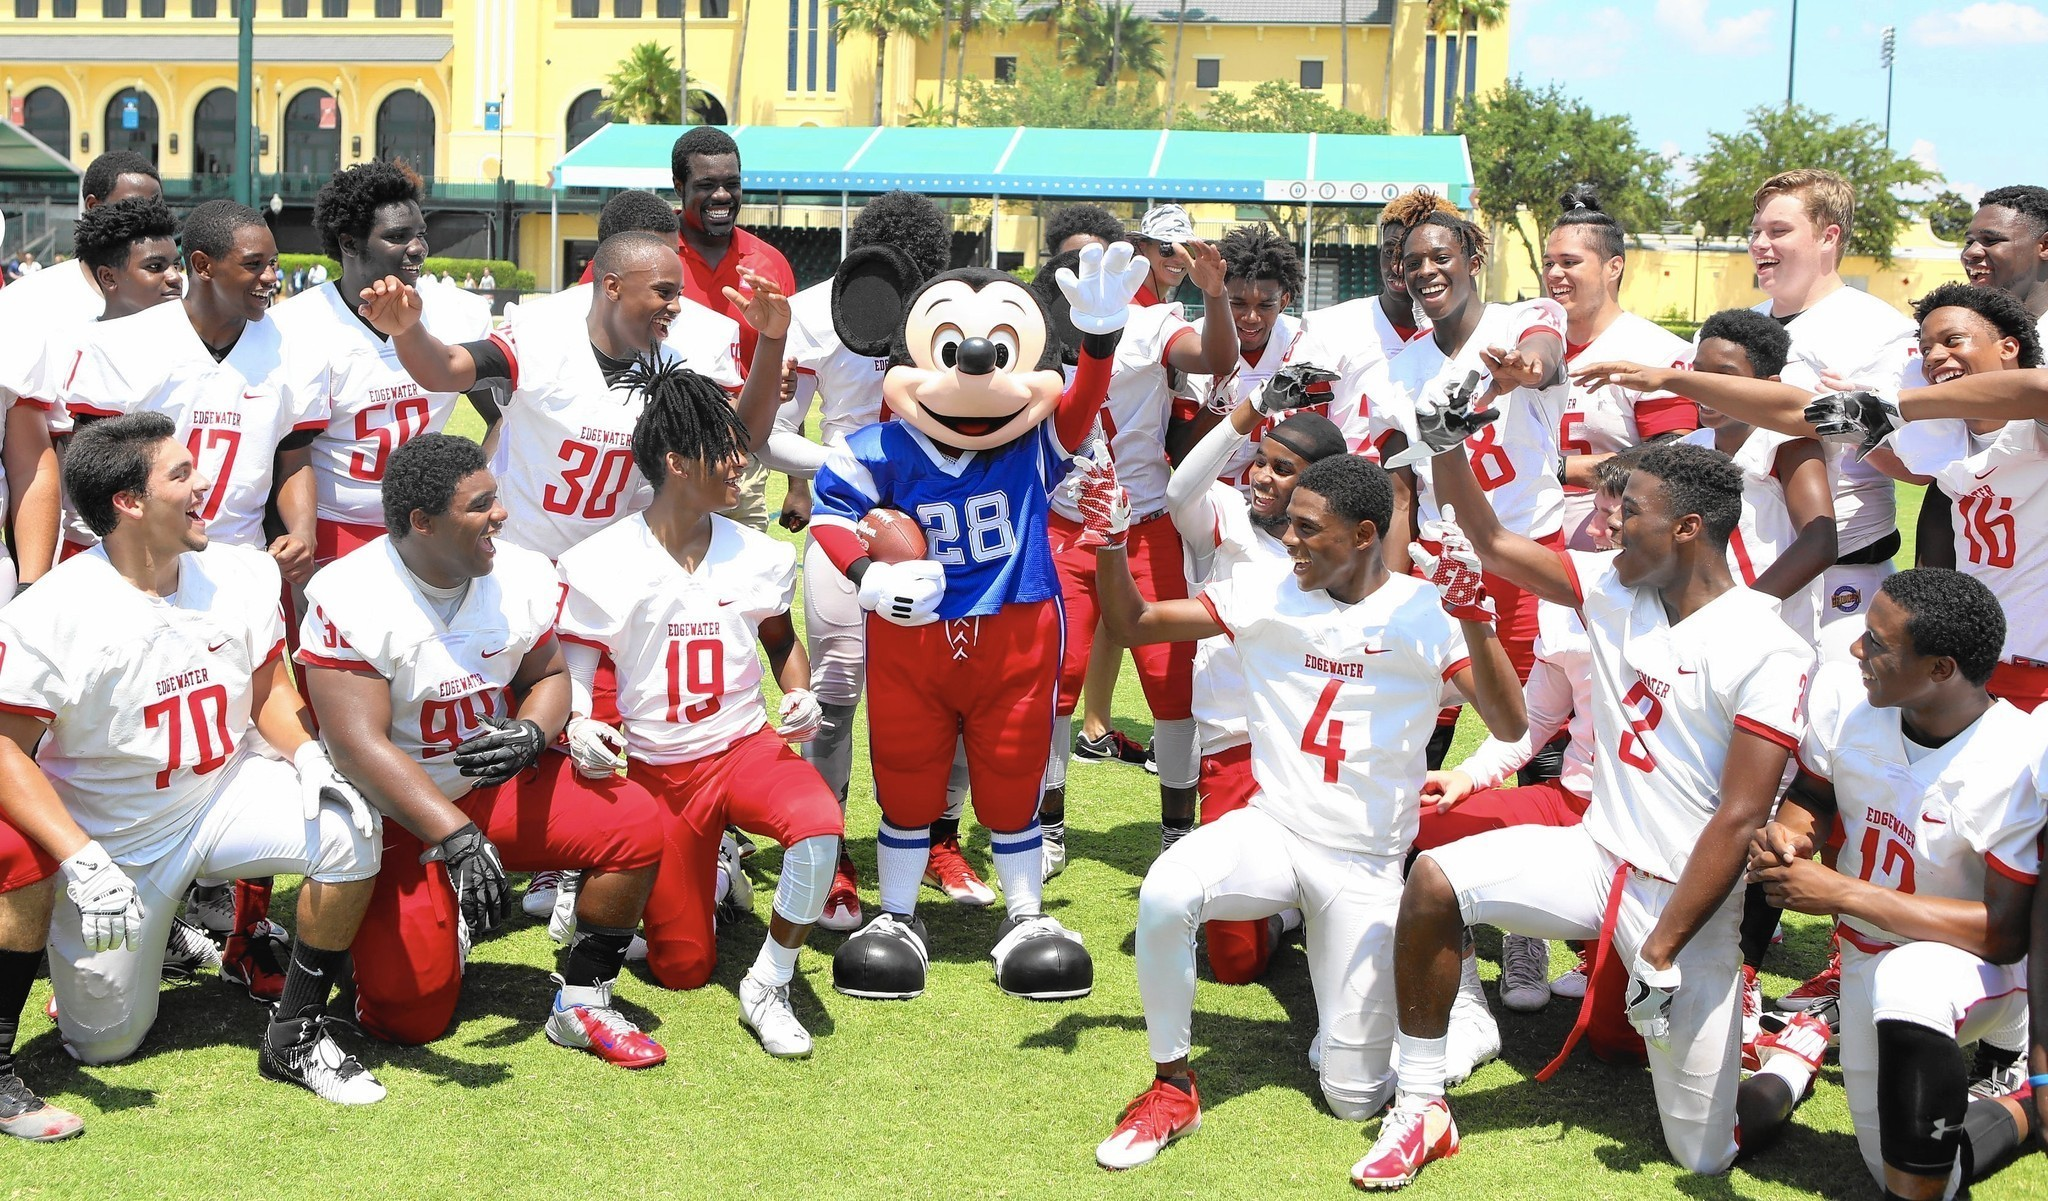 af12b3c8c NFL Pro Bowl in Orlando will include dodgeball for all-star players -  Orlando Sentinel